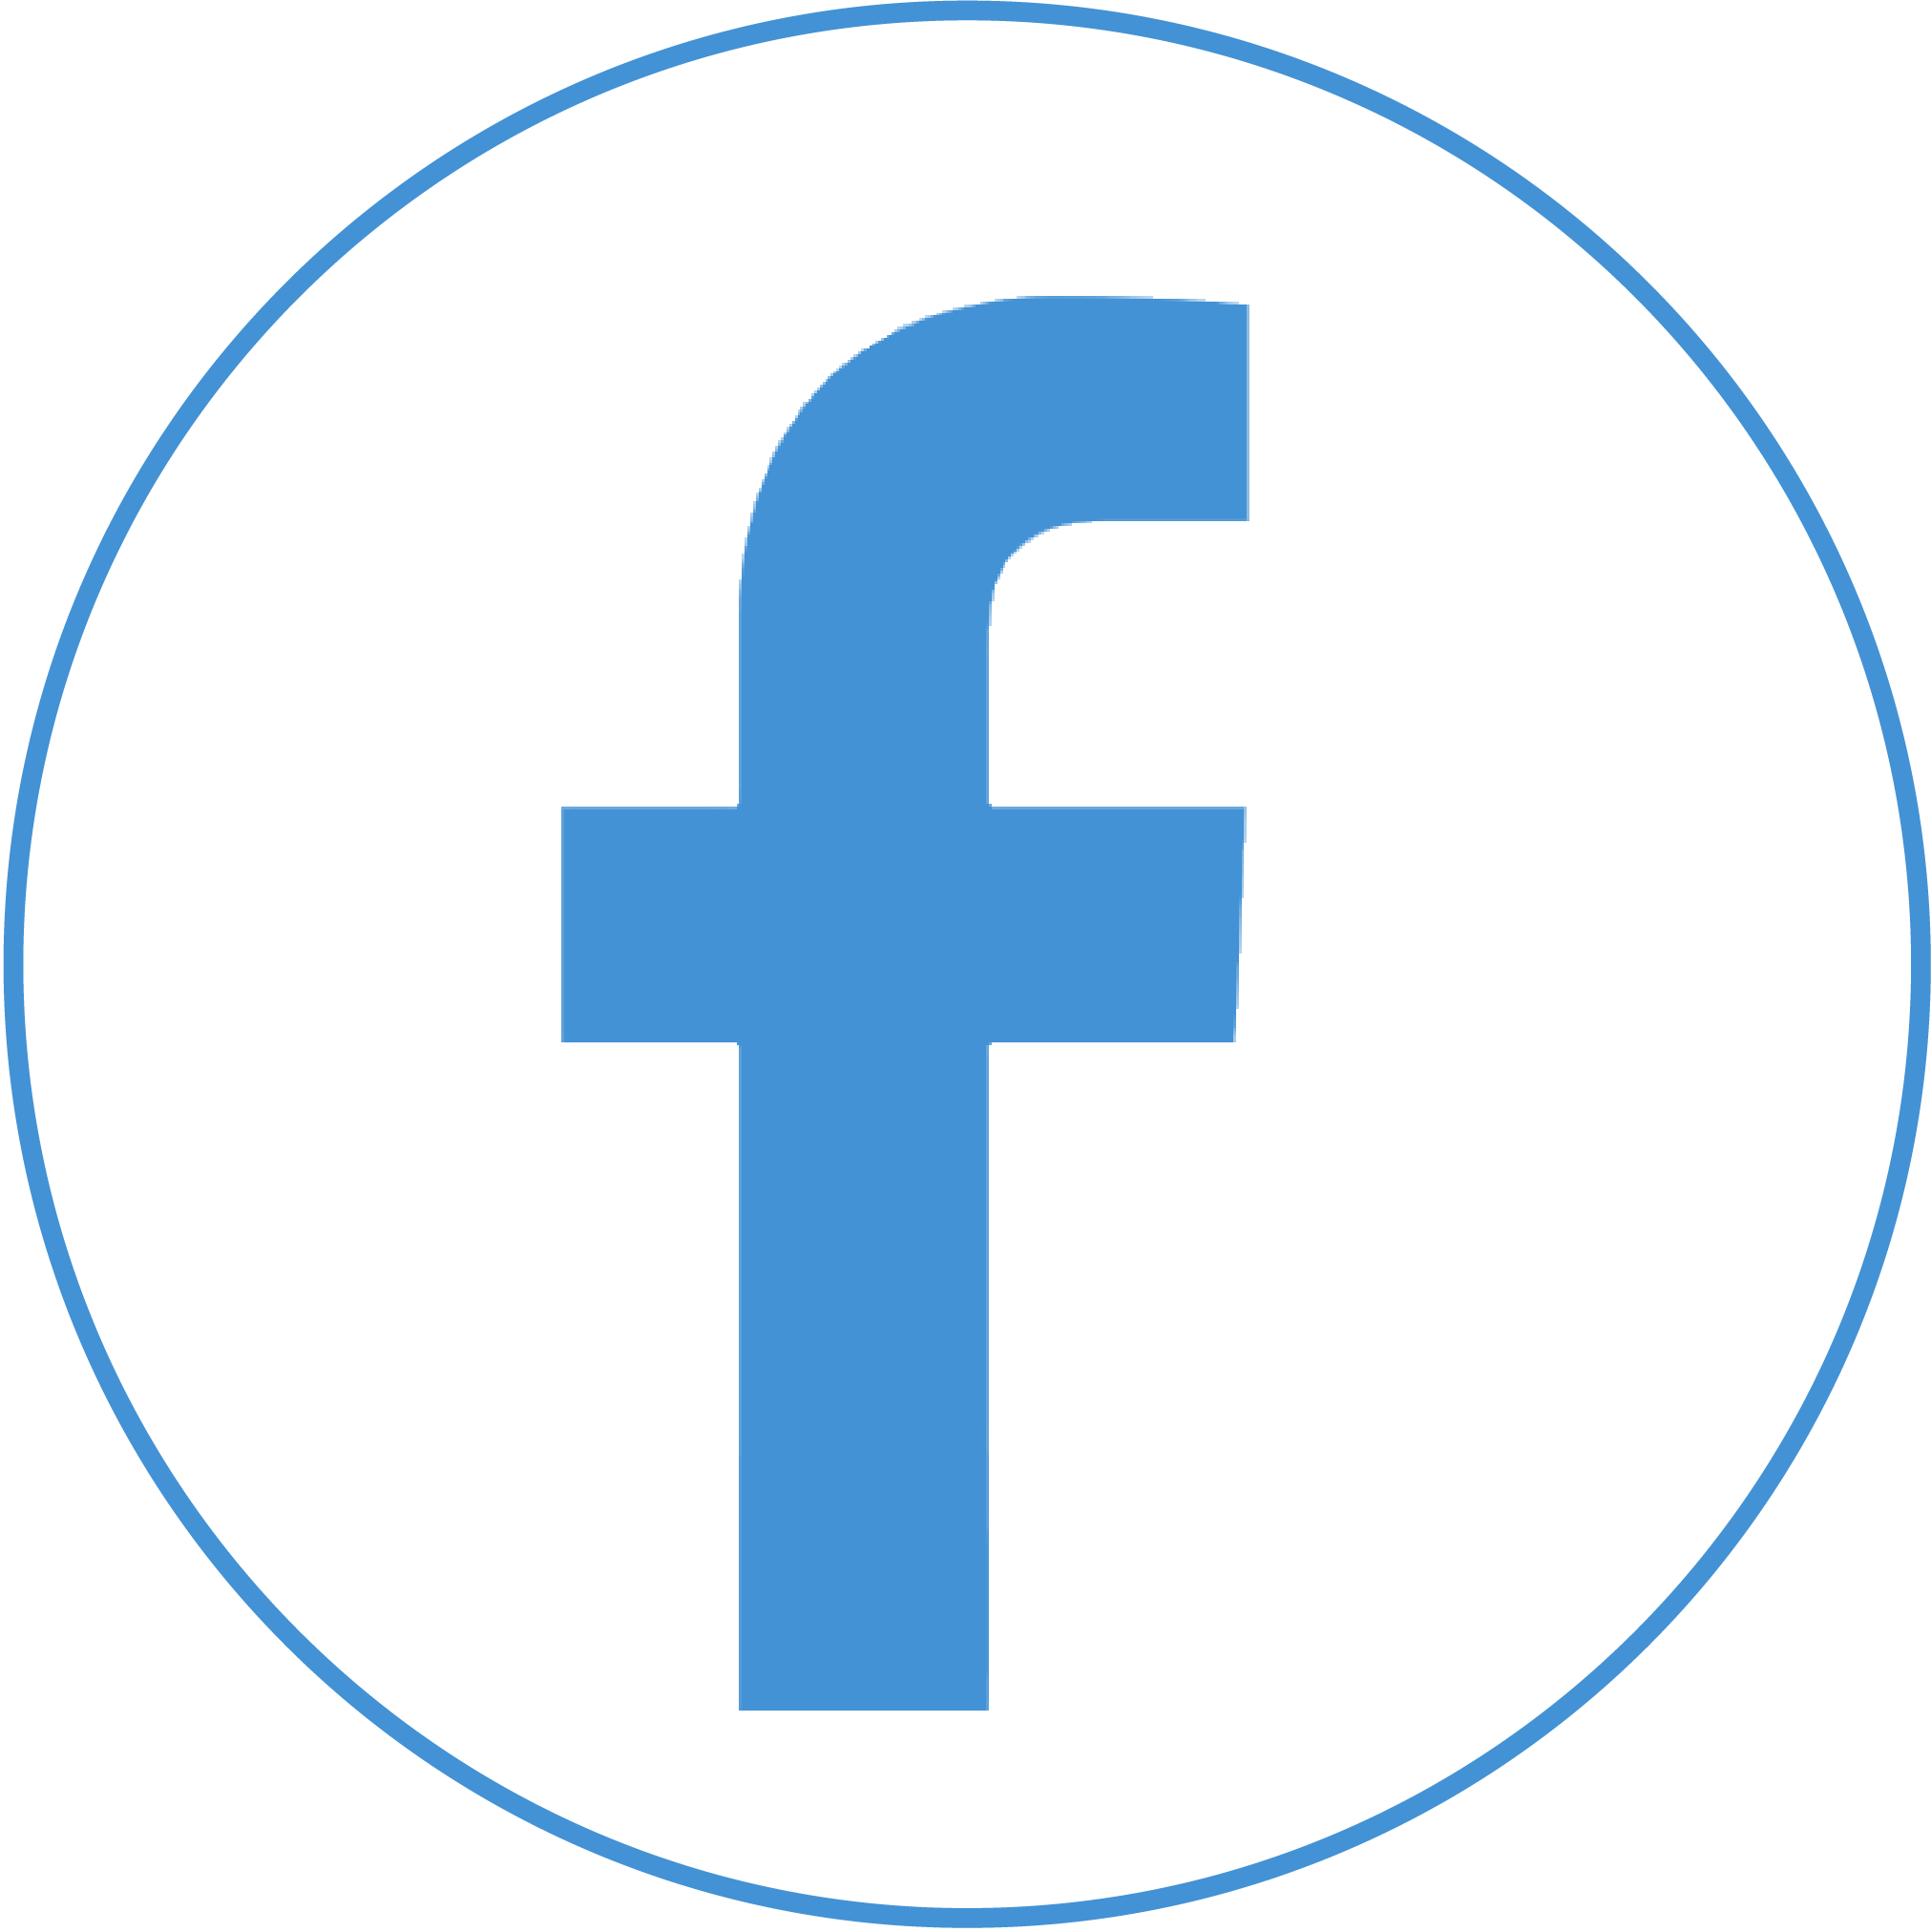 facebook-logo-png-20 - Supportive Guru